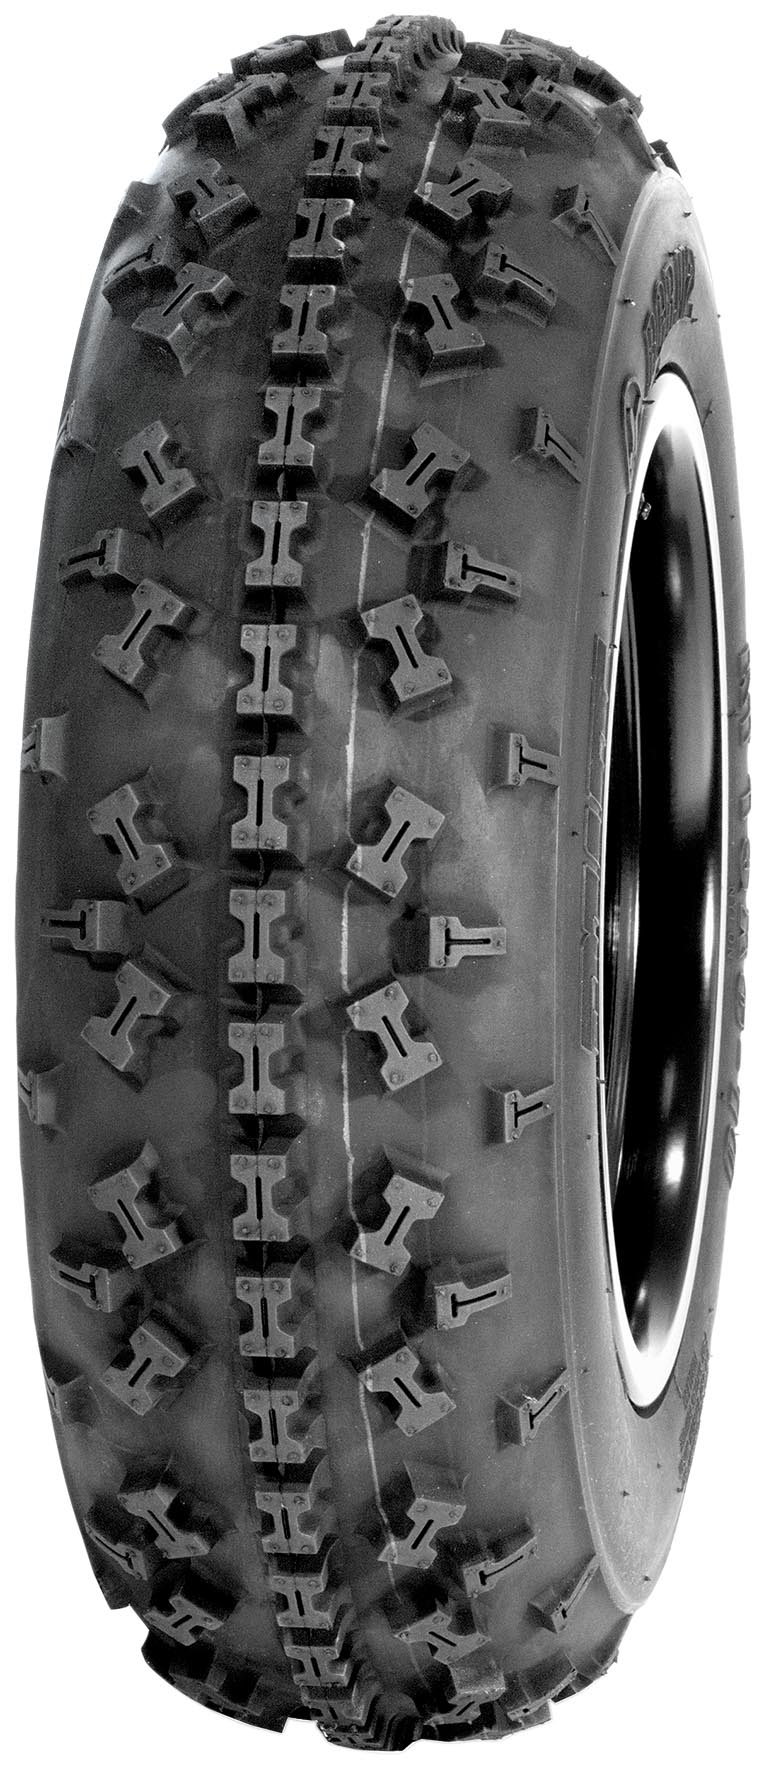 Jr MX Tire